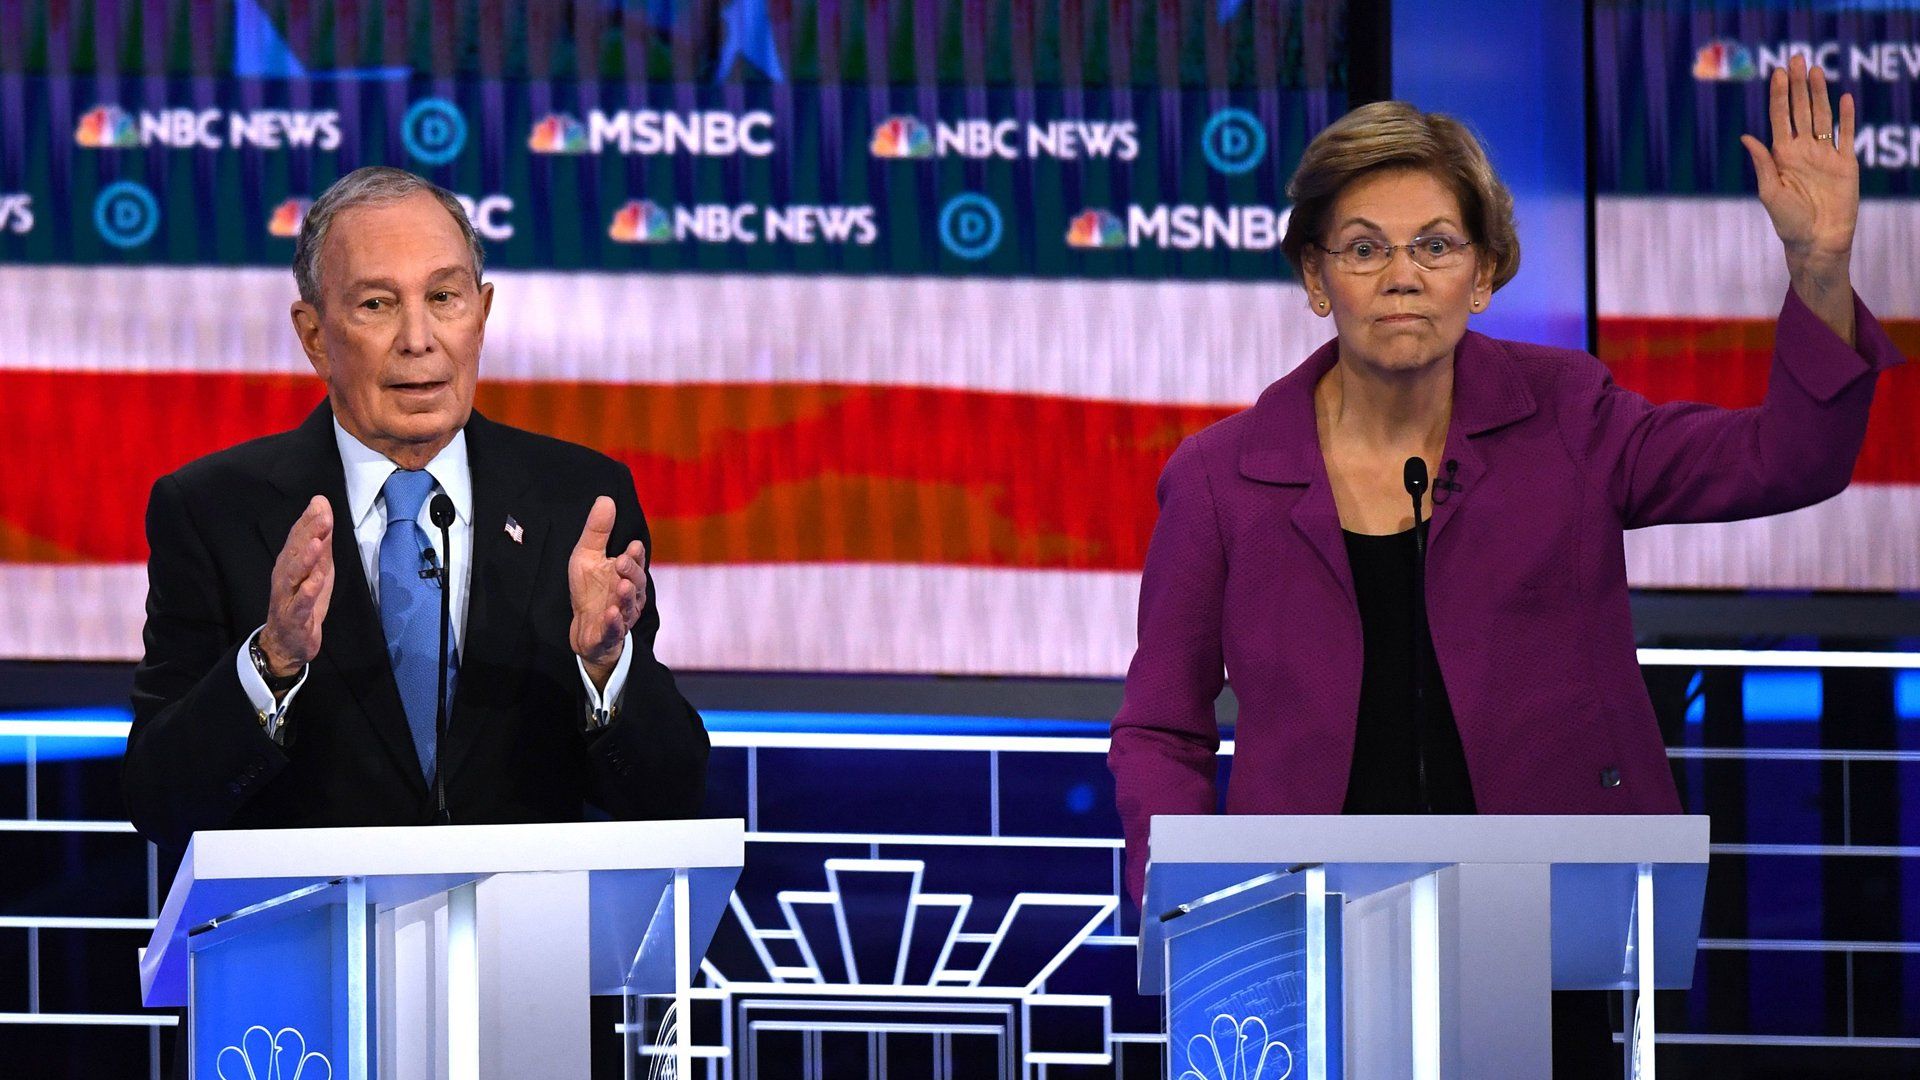 Sen. Elizabeth Warren, right, gestures next to former New York Mayor Mike Bloomberg during the ninth Democratic primary debate of the 2020 presidential campaign season in Las Vegas on Feb. 19, 2020. (Credit: Mark Ralston / AFP / Getty Images)